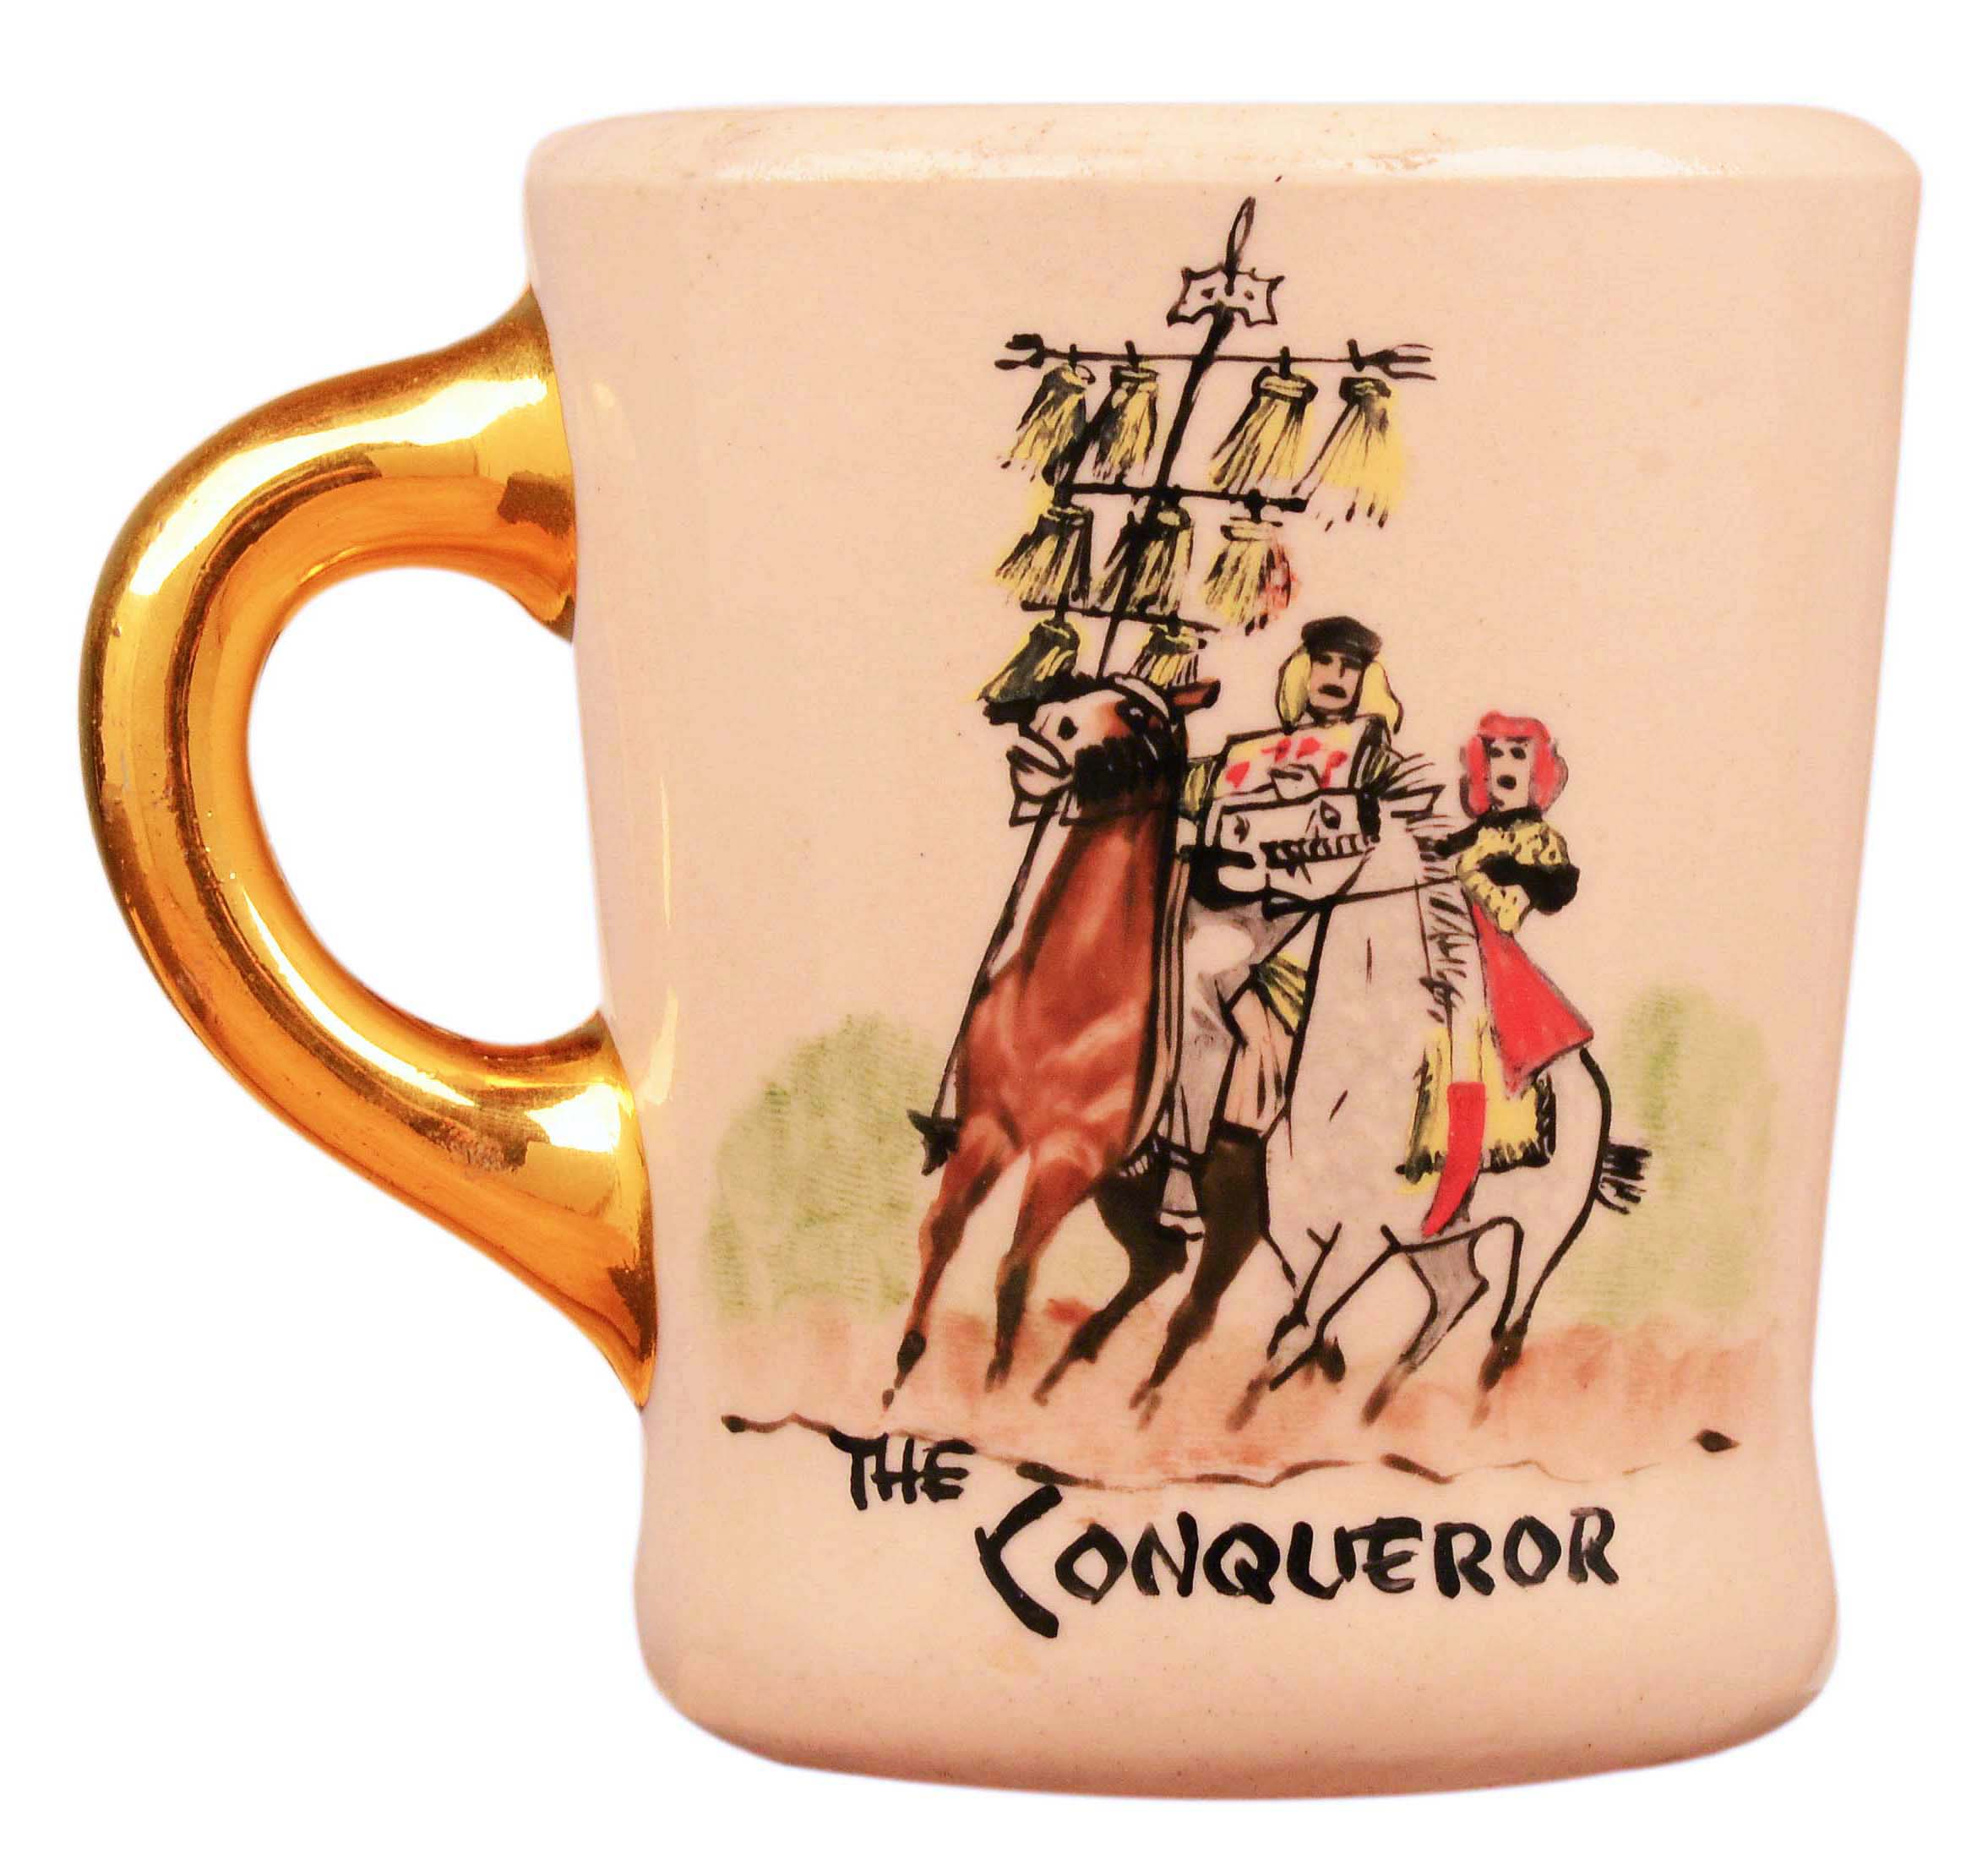 John Wayne mug for the 1956 movie The Conqueror, front.